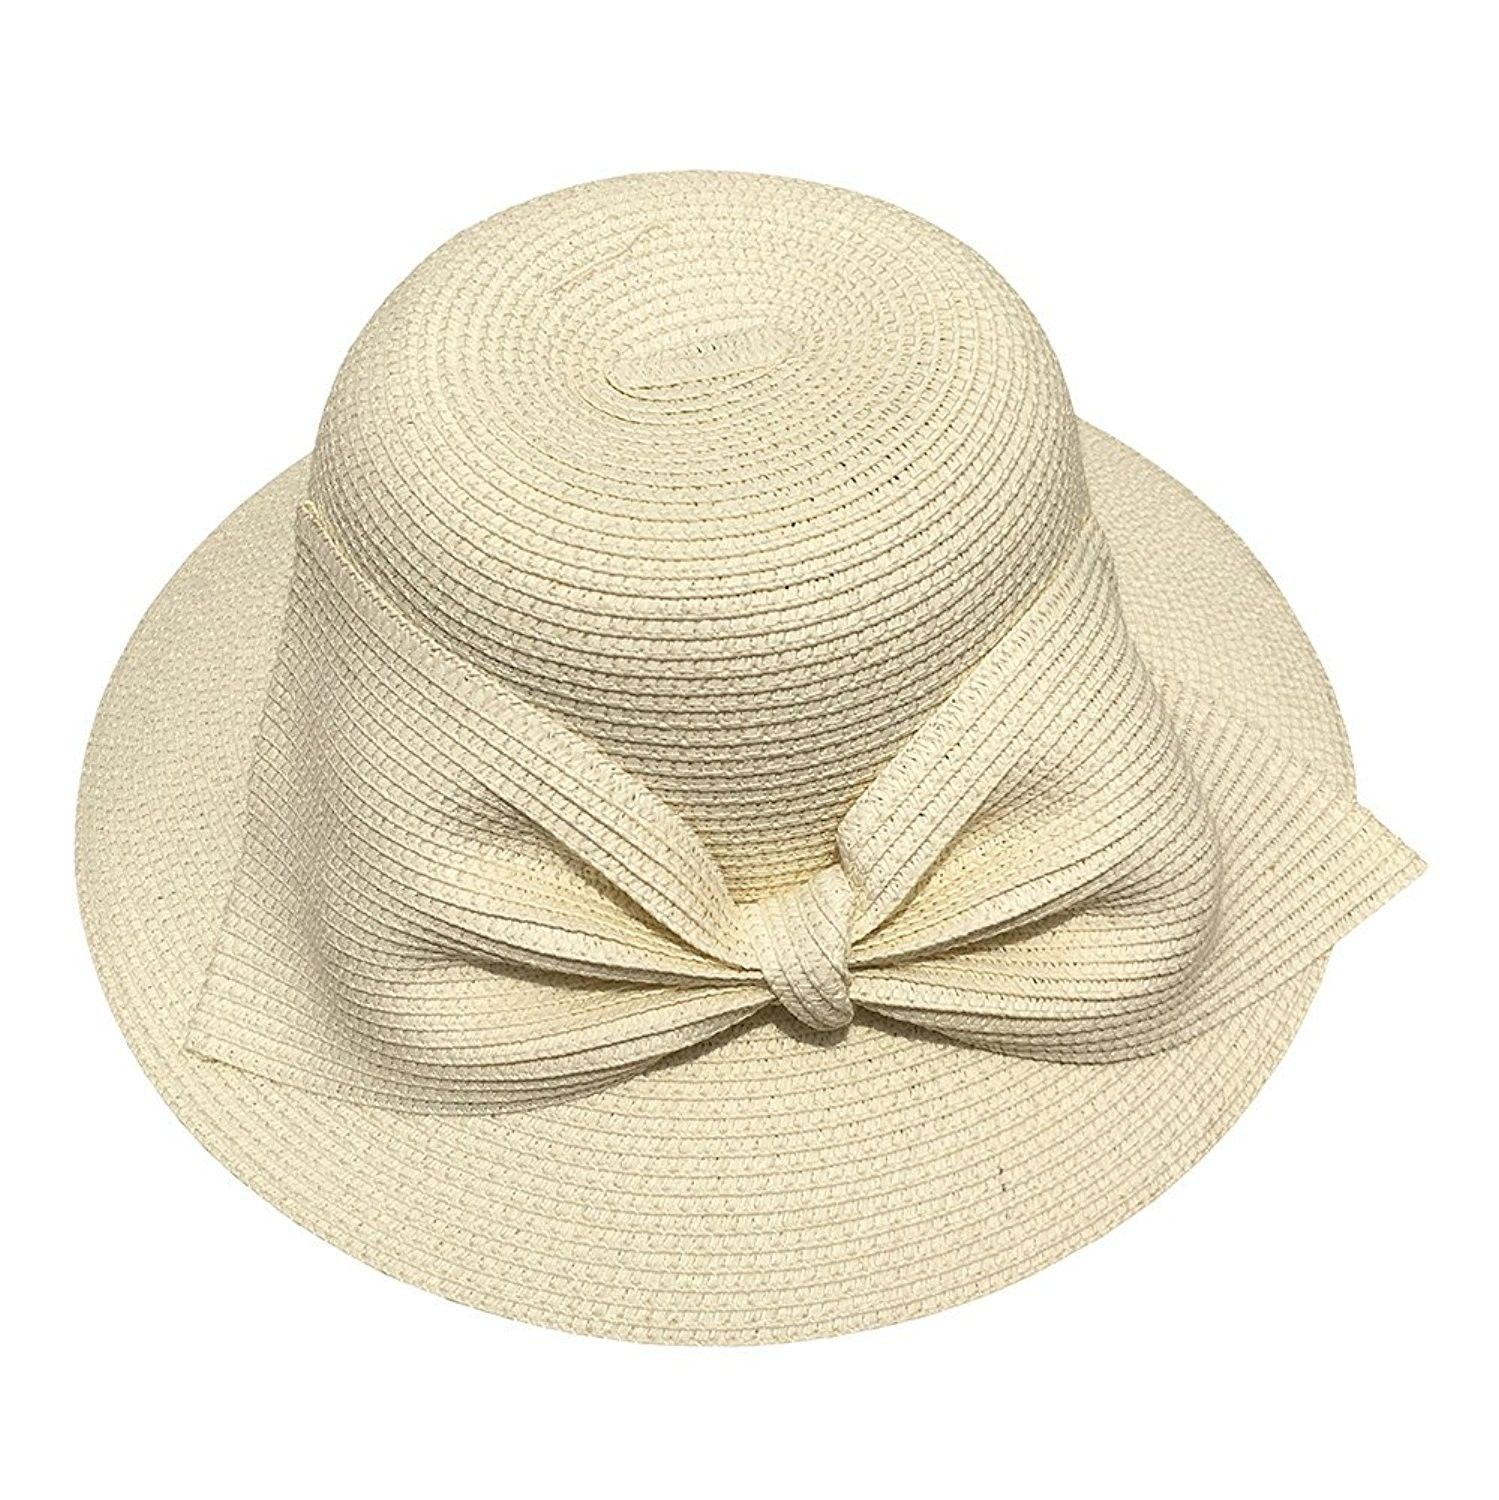 97918f08577 Womens SPF50 Packable Summer Sun Beach Straw Hat Wide Brim Floppy 55-58cm -  7w08_cream